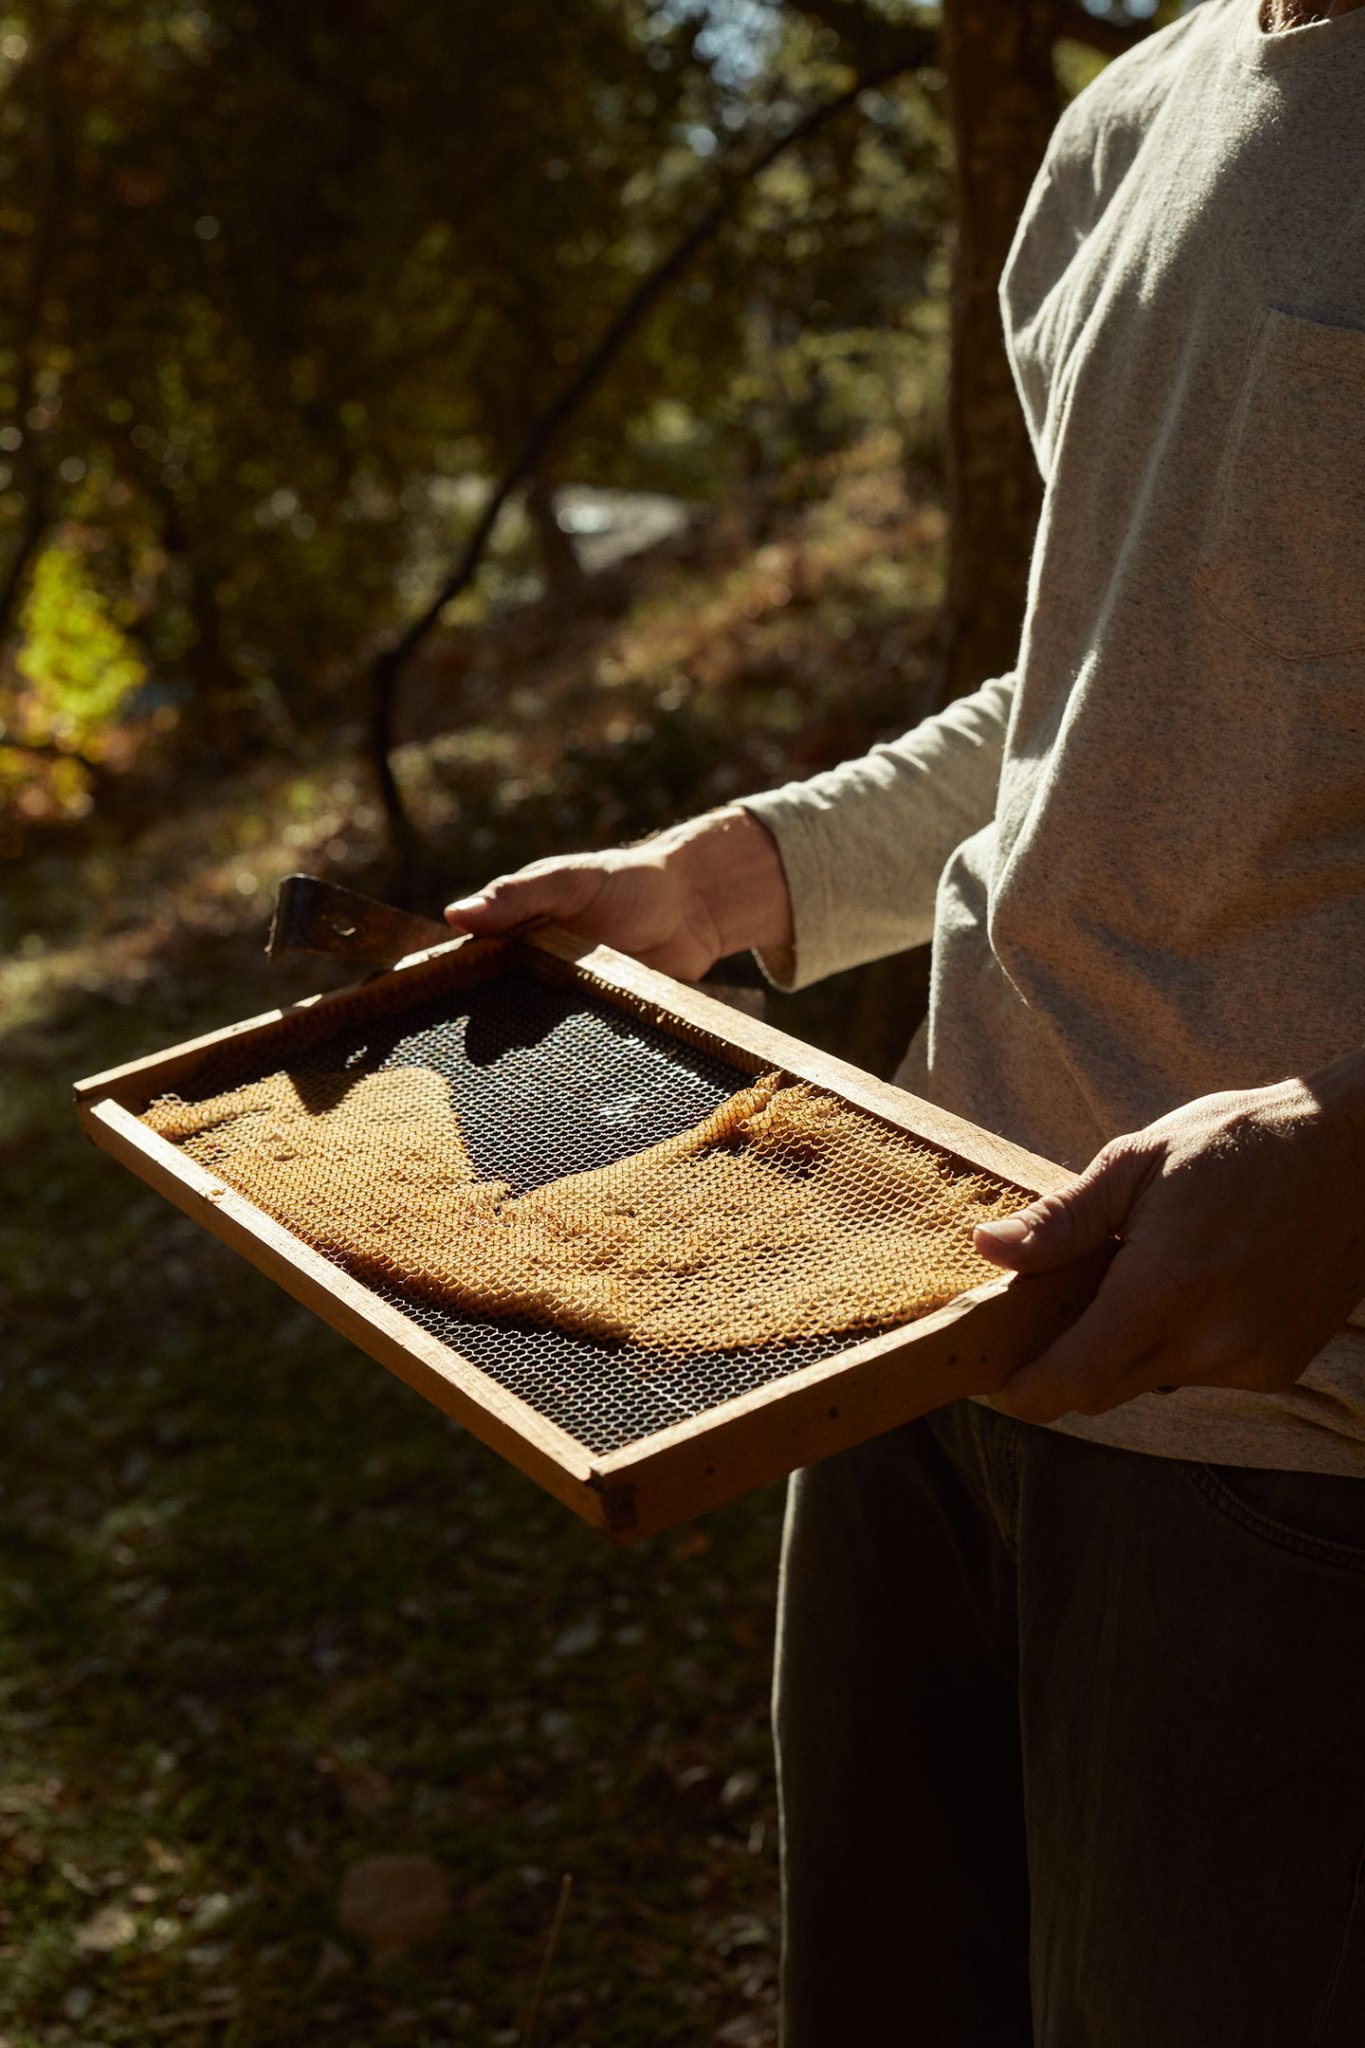 The changing environment of the Santa Monica Mountains flavors the honey of Eli's Bees. - Waves